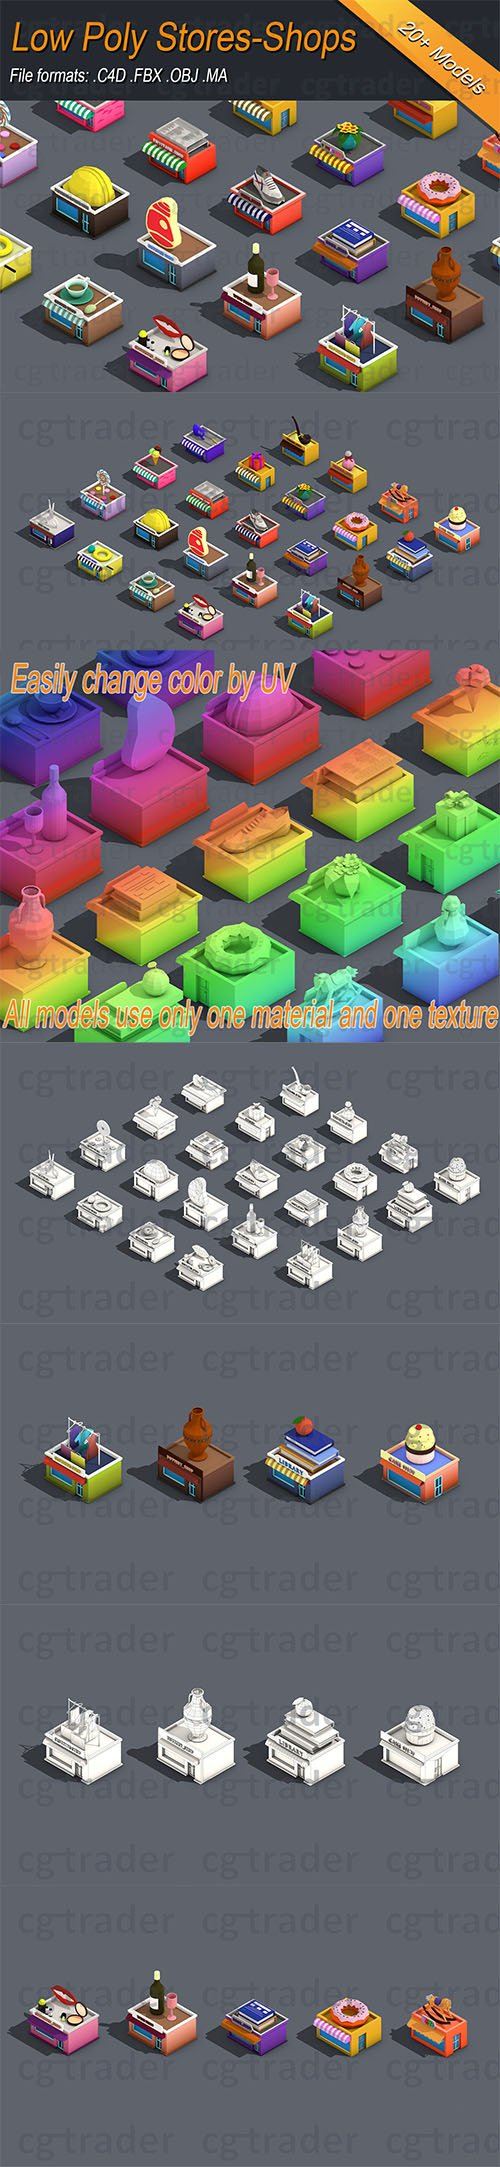 Low poly Stores Shops Isometric Low-poly 3D model